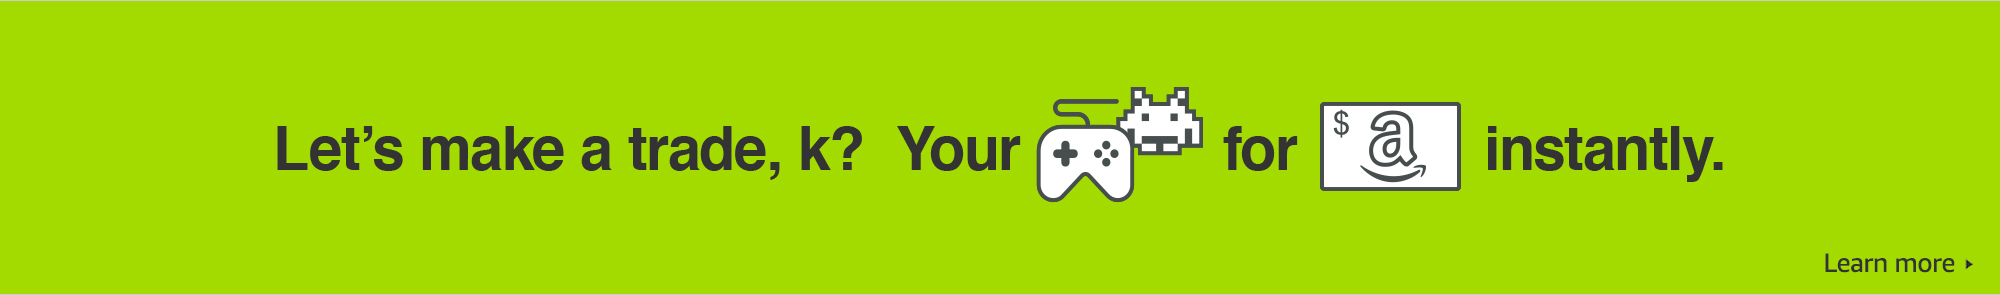 Get paid instantly for your games and gear.